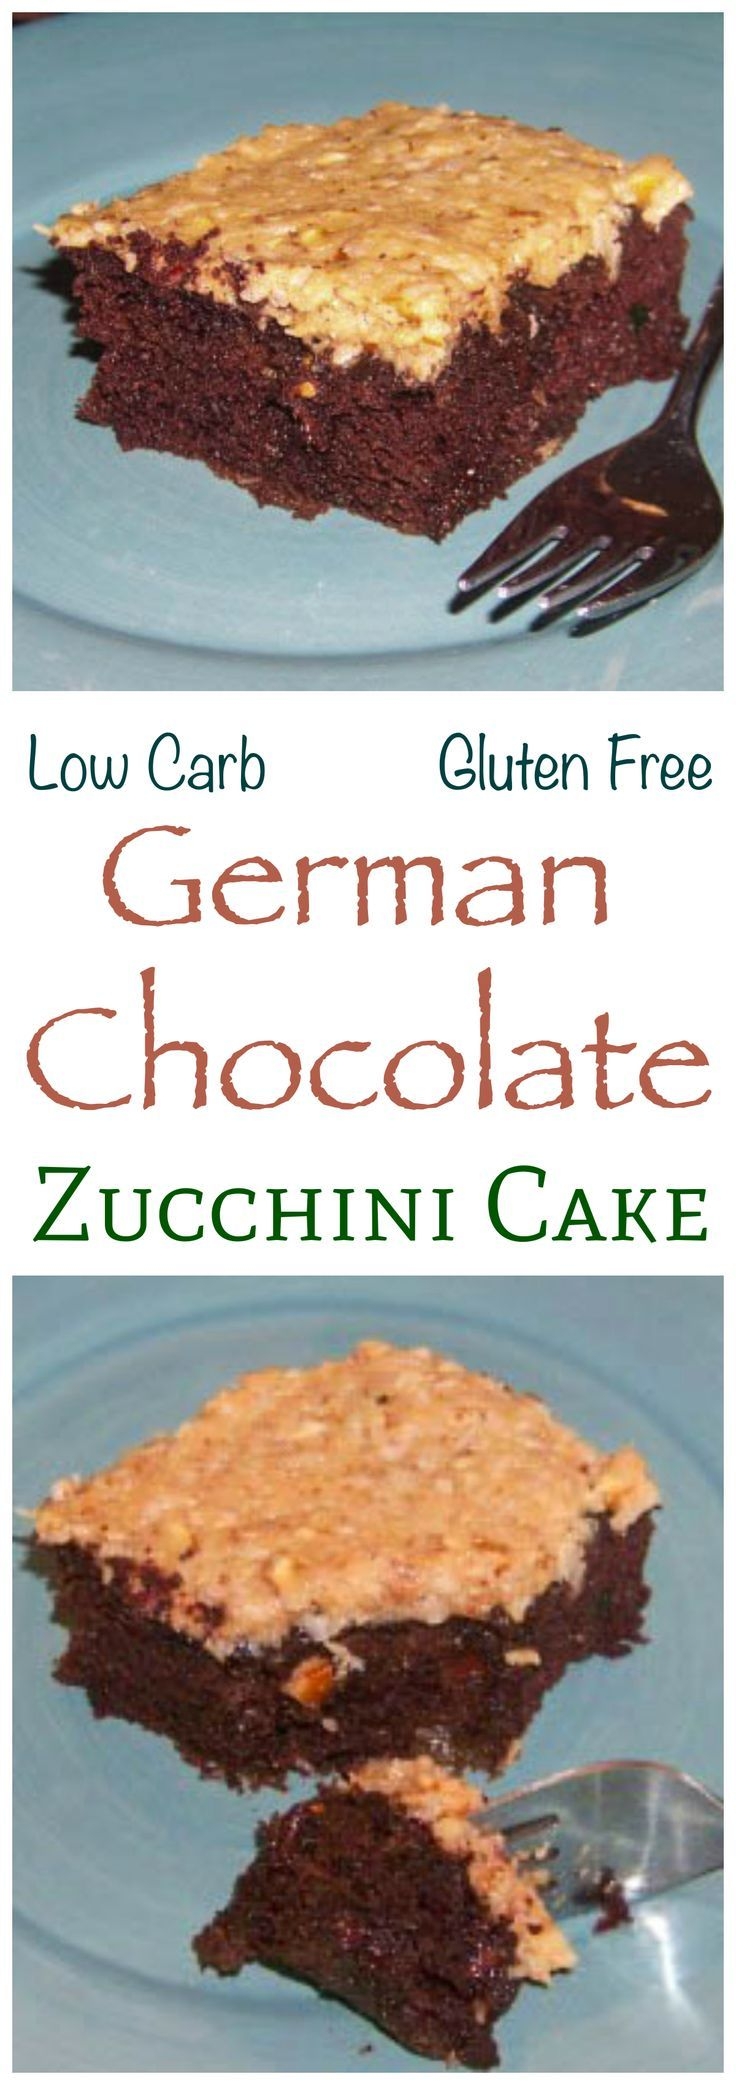 A delicious sugar free and low carb German chocolate zucchini cake. This zucchini and coconut flour based chocolate cake is super moist and gluten free.